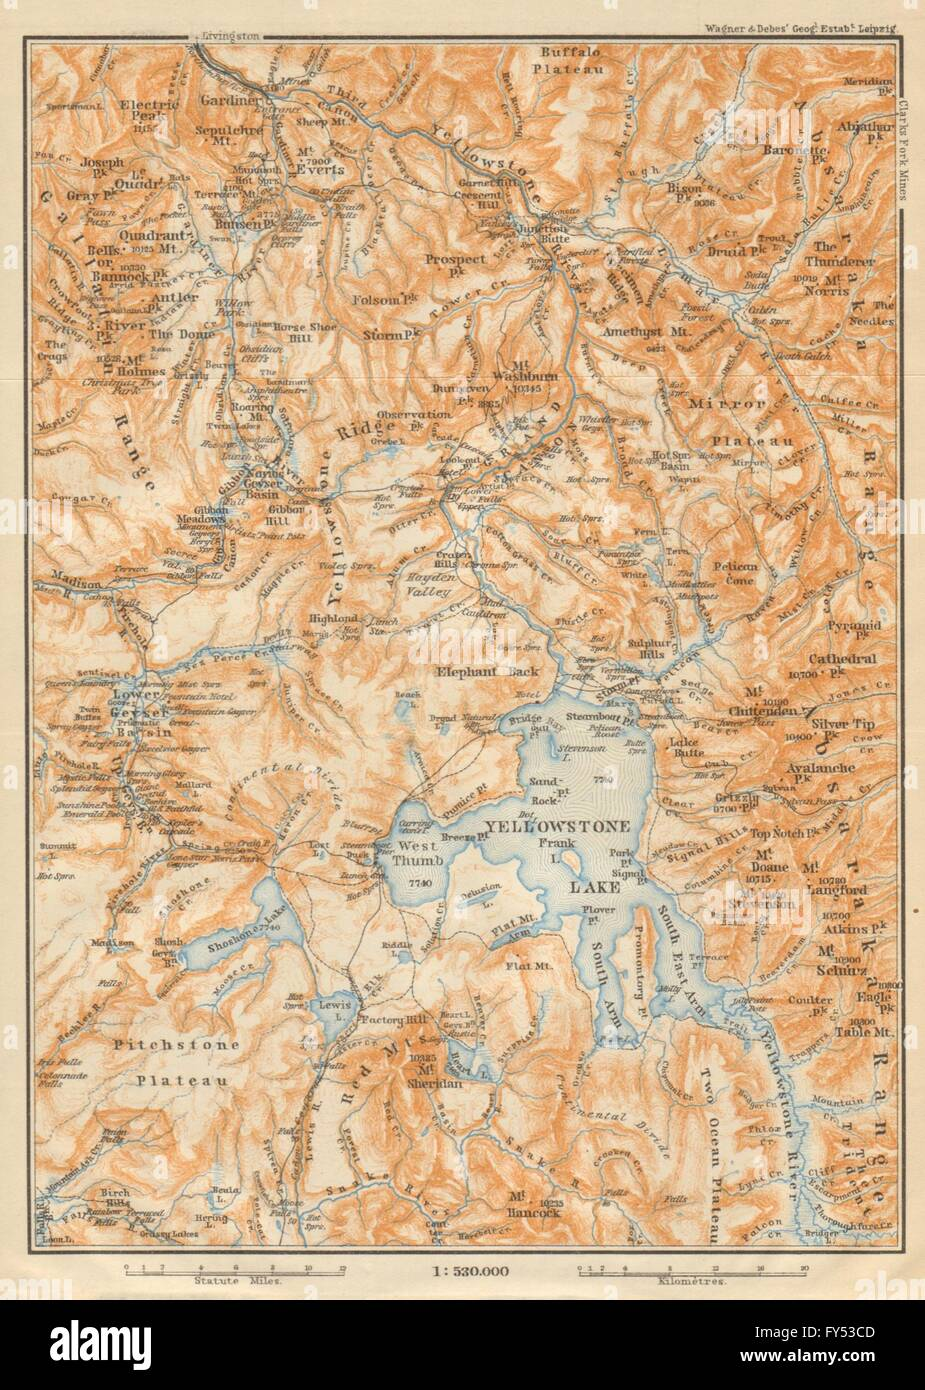 Topographic Map Of Yellowstone.Yellowstone National Park Topo Map Wyoming Baedeker 1904 Stock